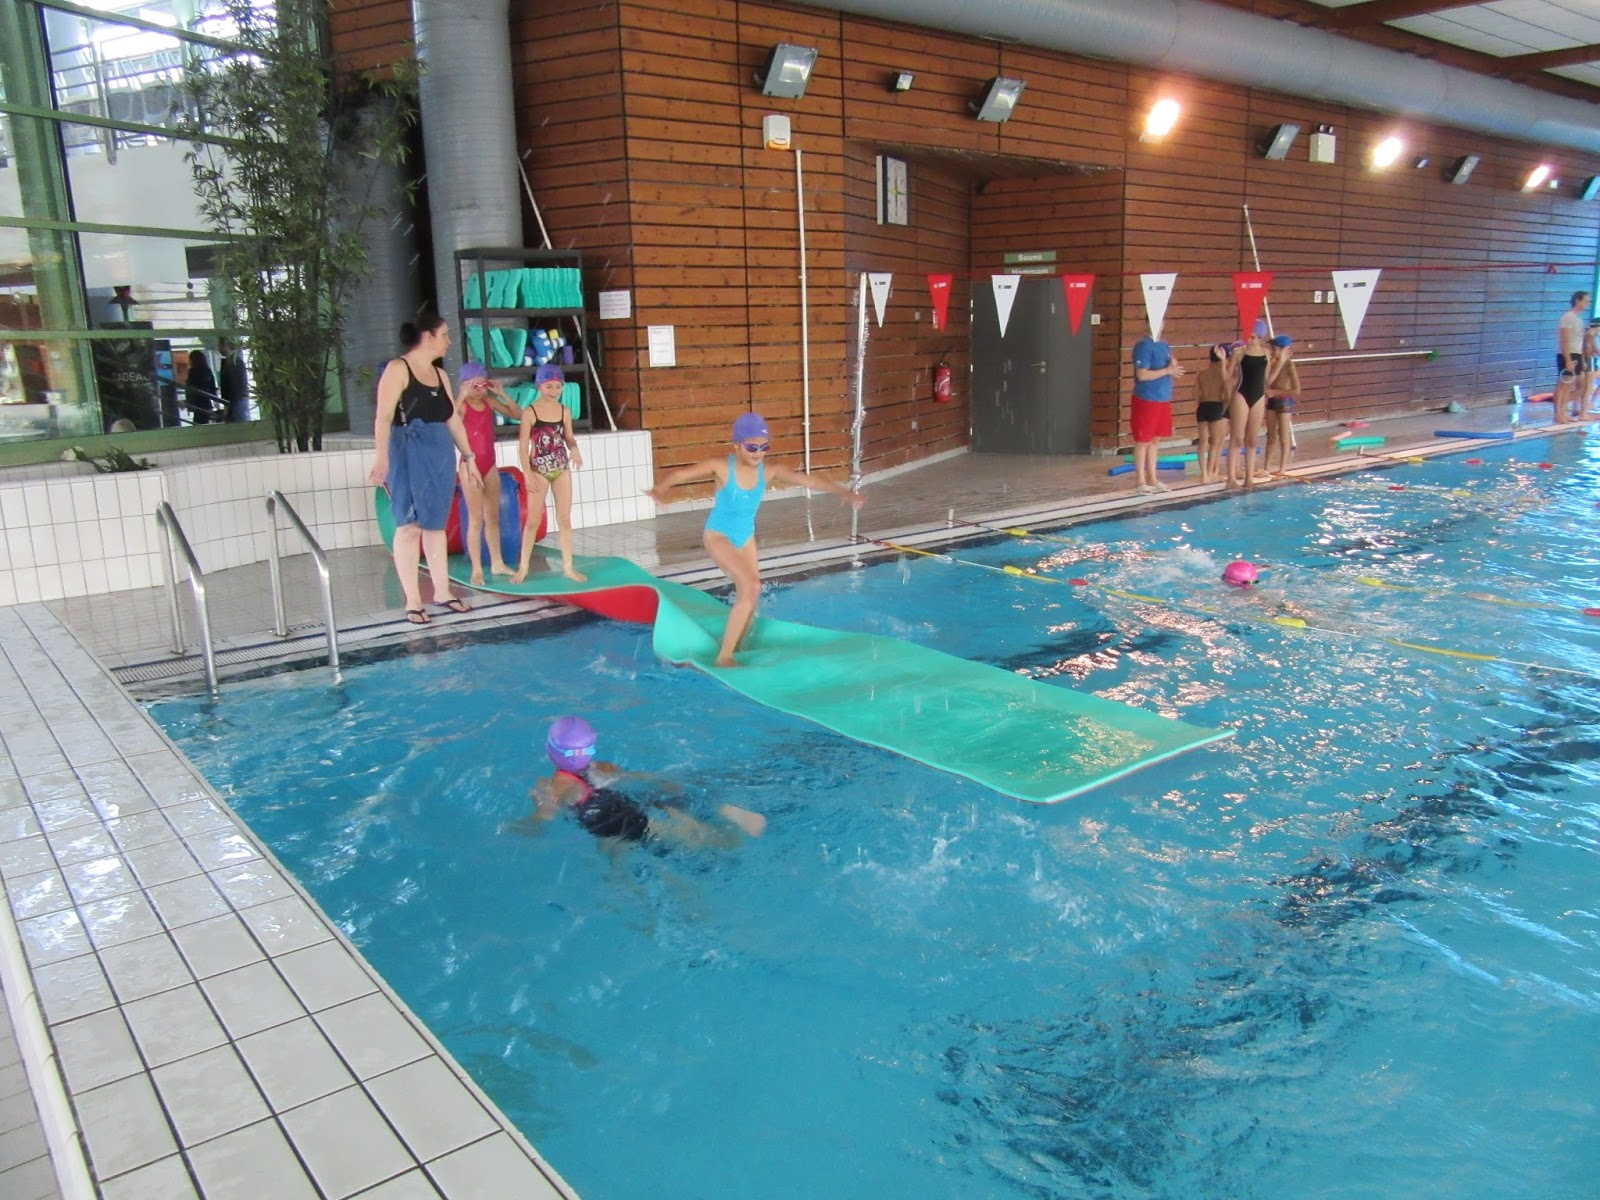 Blog de m douzant ex cm 1 bienvenue welcome for Aquagym piscine paris